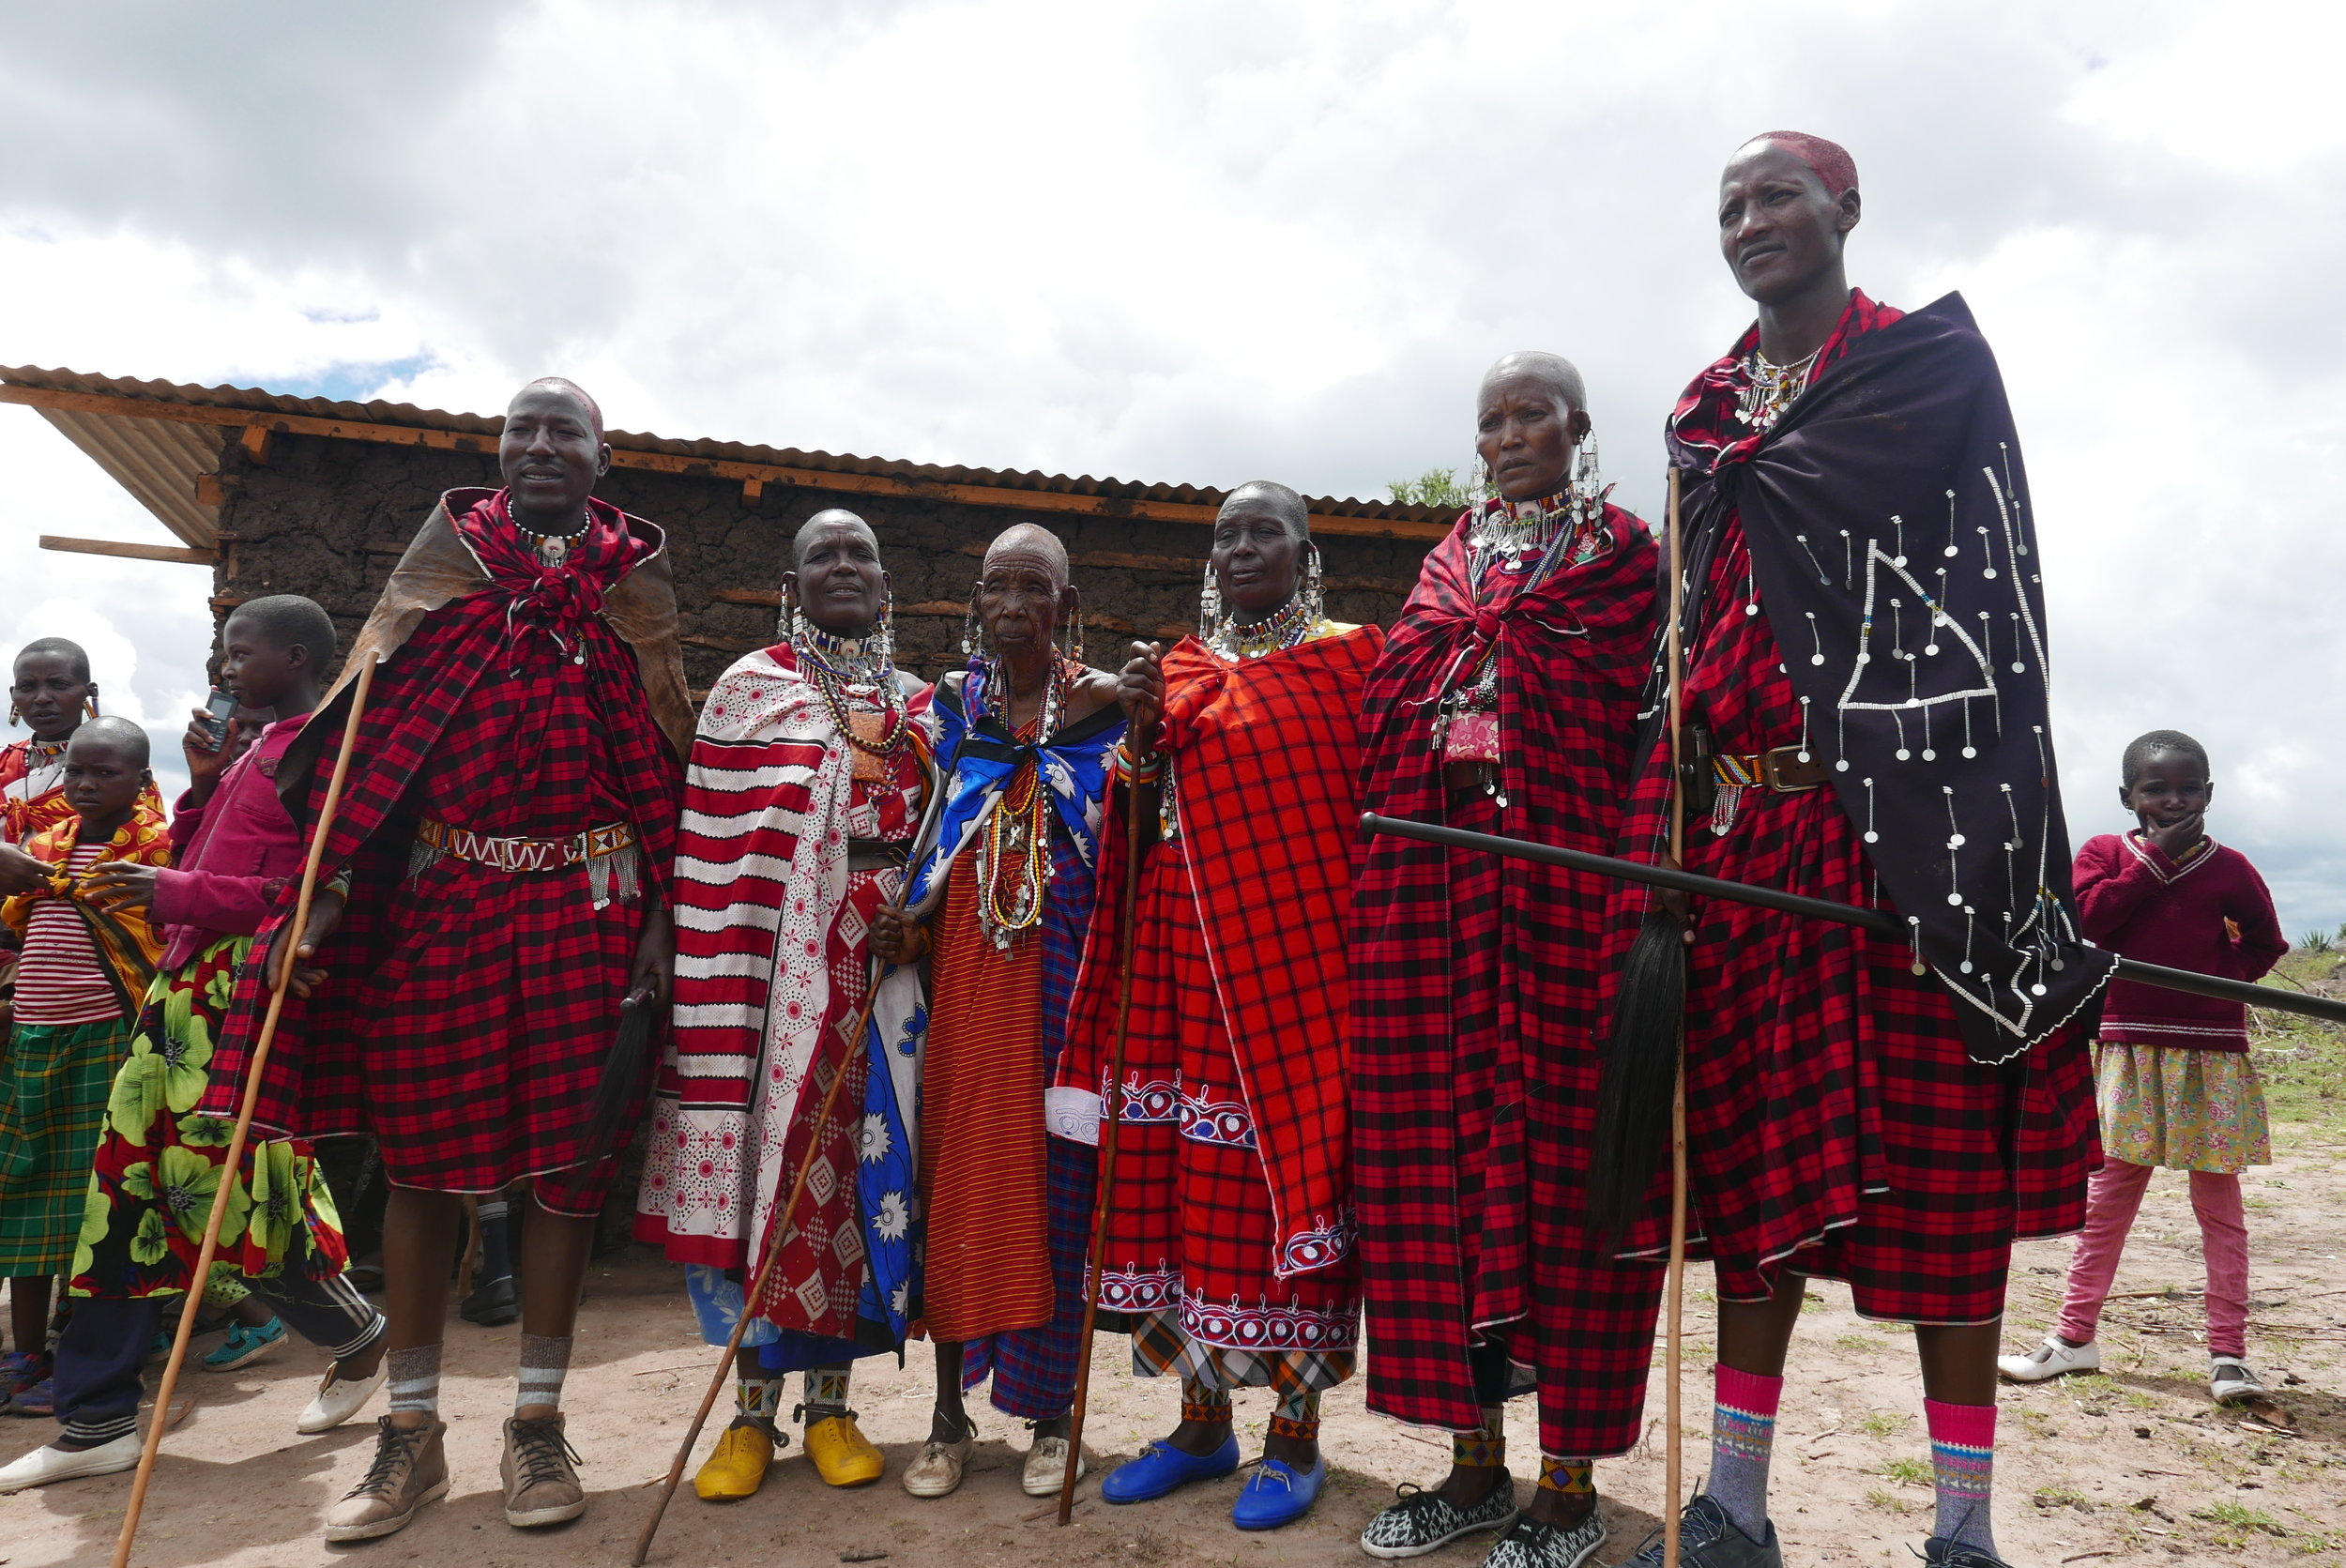 A photo from a Maasai wedding.